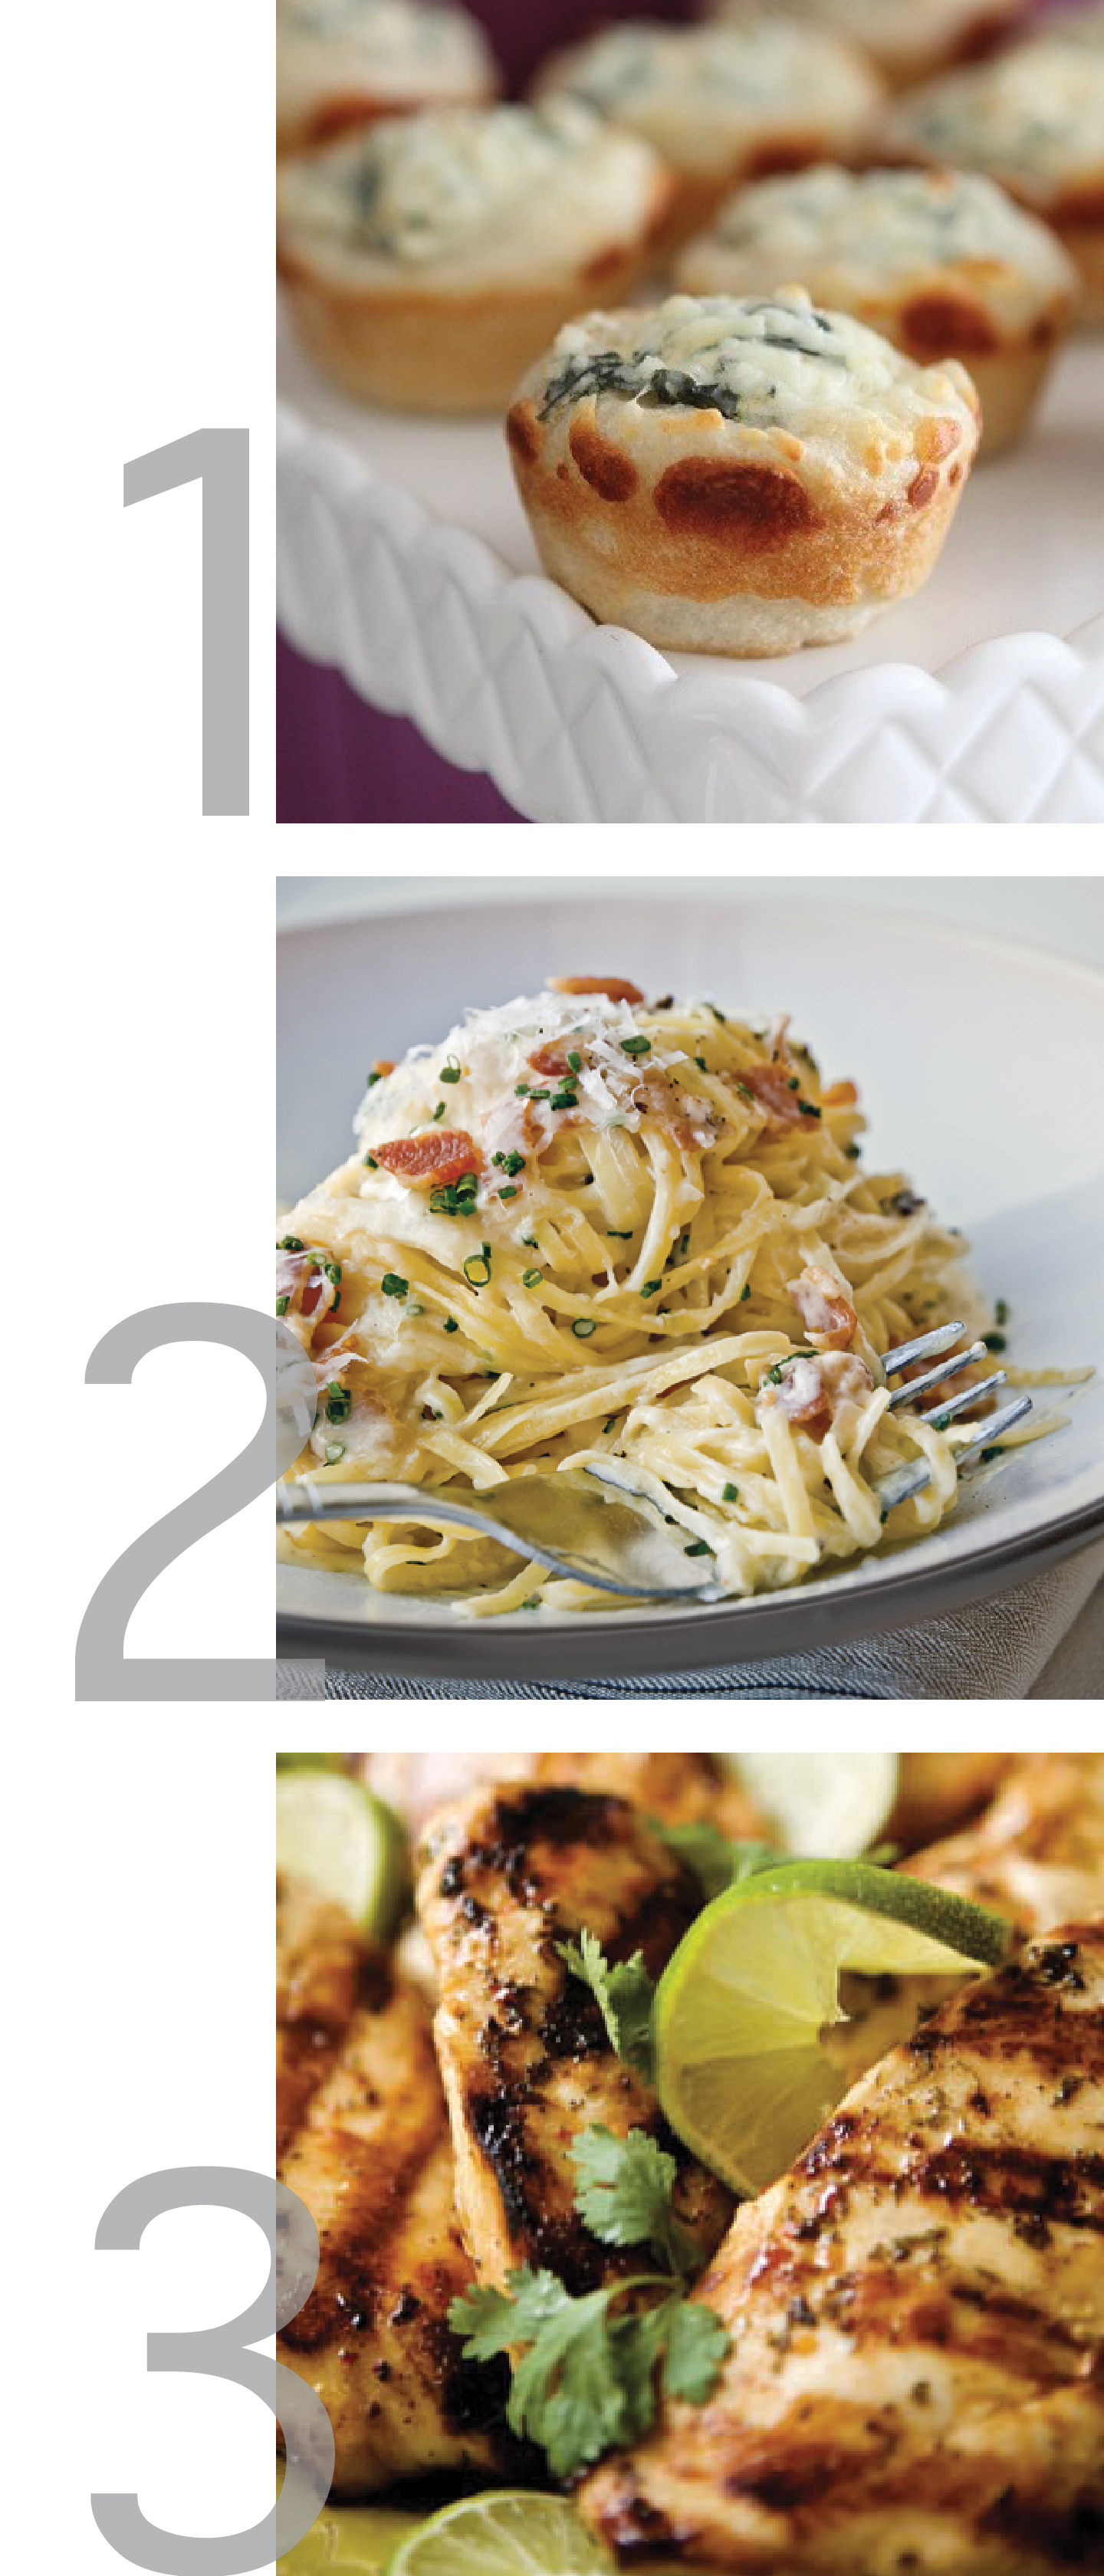 this photo shows the writer's favorite pins from pinterest this week. She calls them pinsperation. The first image shows cute little mini bread bowls filled with spinach dip. The second image shows a bountiful plate of carbonara. The last picture shows the close up of a sizzling plate of cilantro lime chicken.